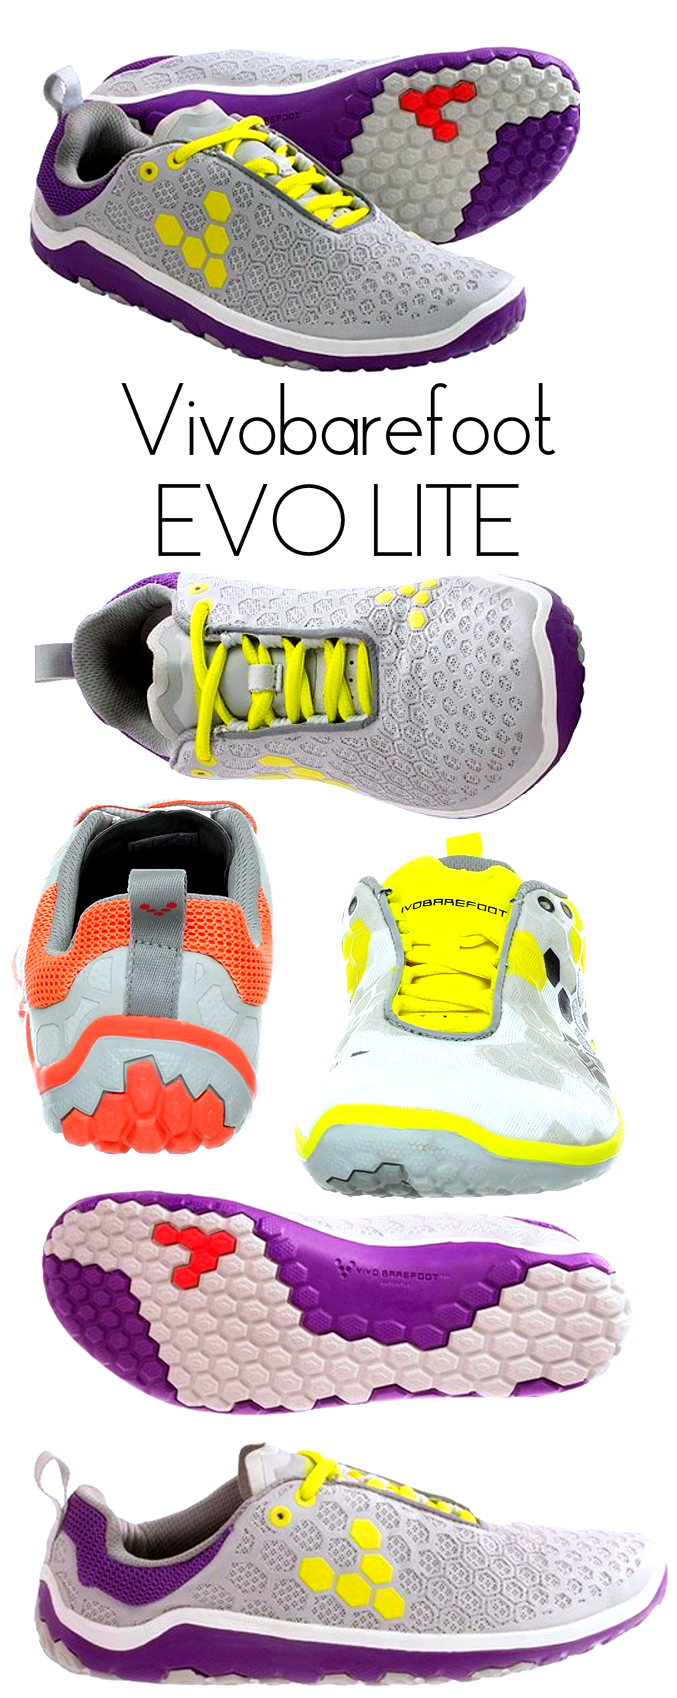 Vivobarefoot Evo Lite Review for Forefoot Running